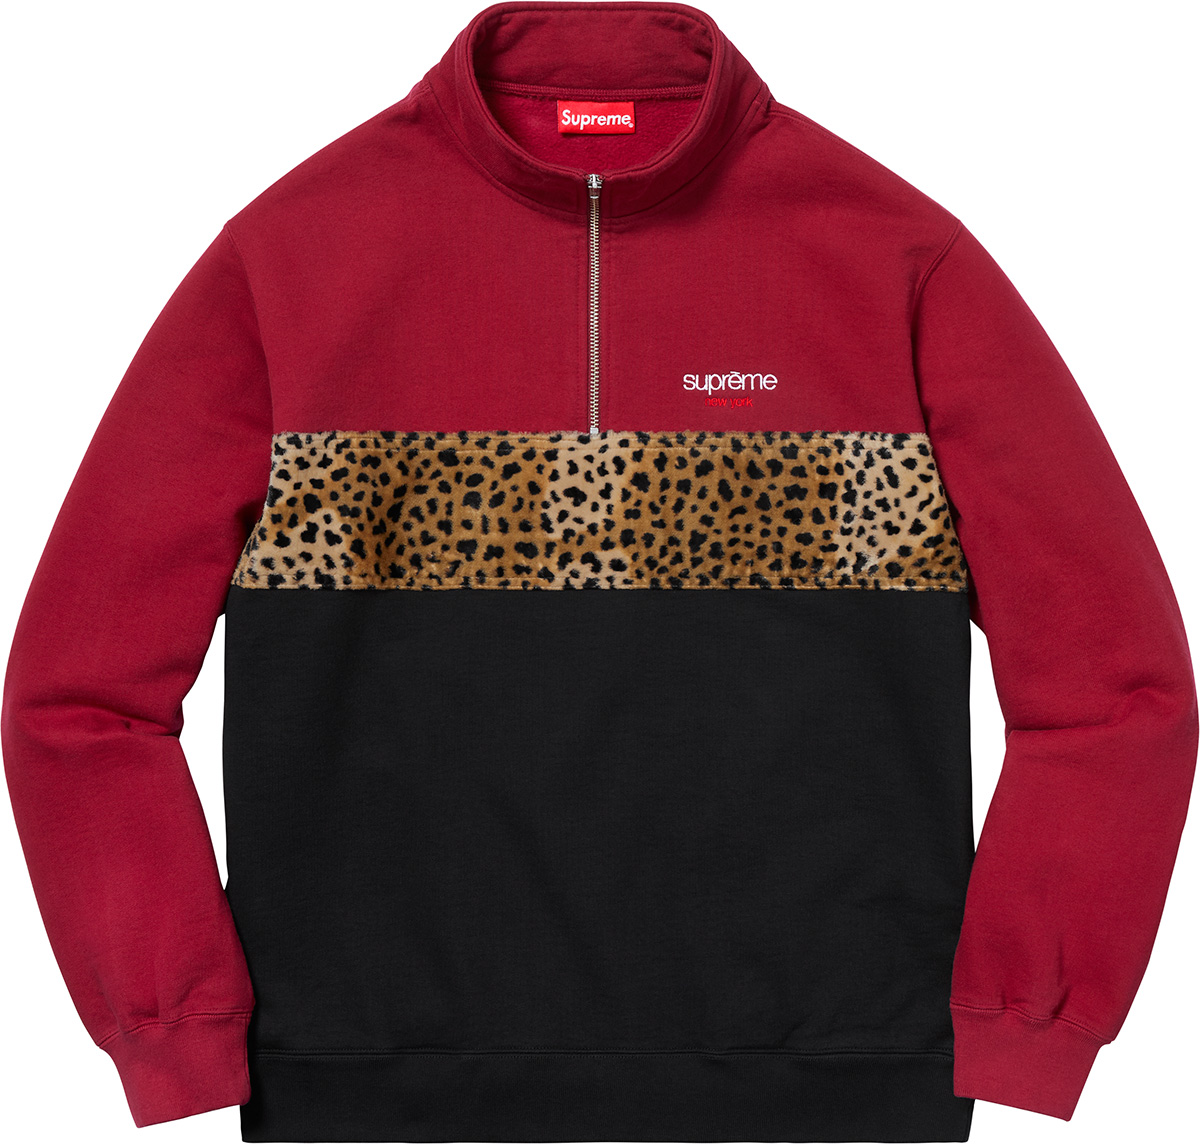 supreme-18aw-fall-winter-leopard-panel-half-zip-sweatshirt